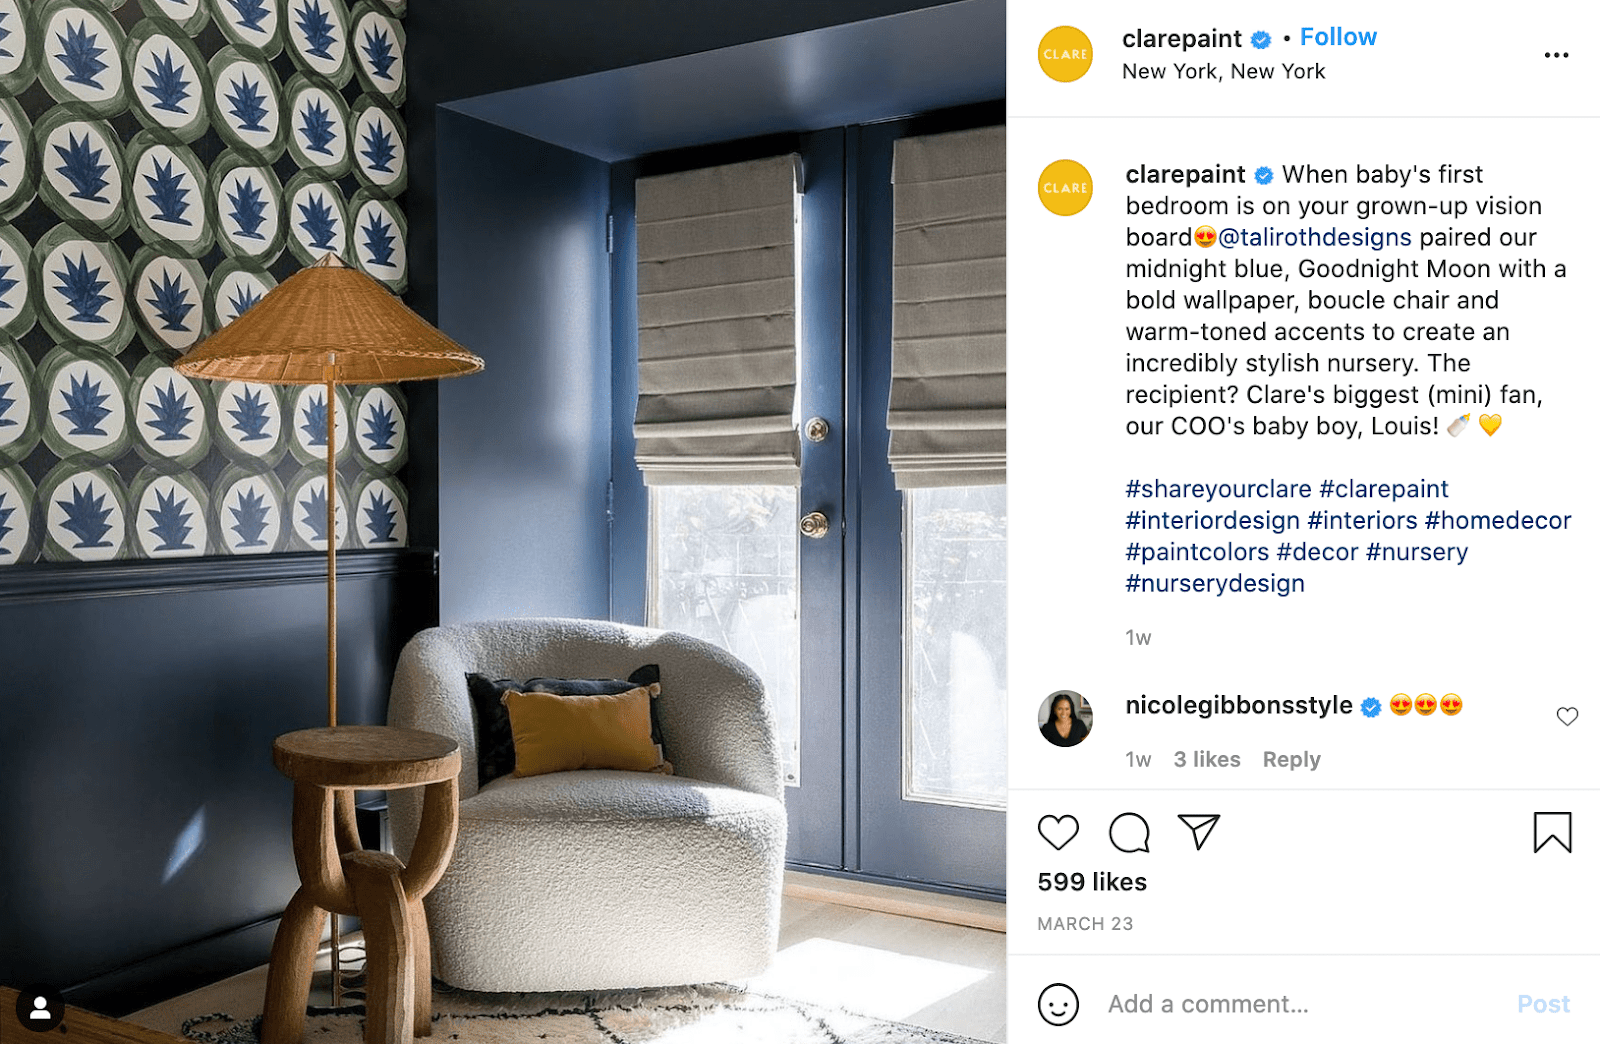 Clare paint's Instagram caption, demonstrating the brand's chic, professional brand voice.